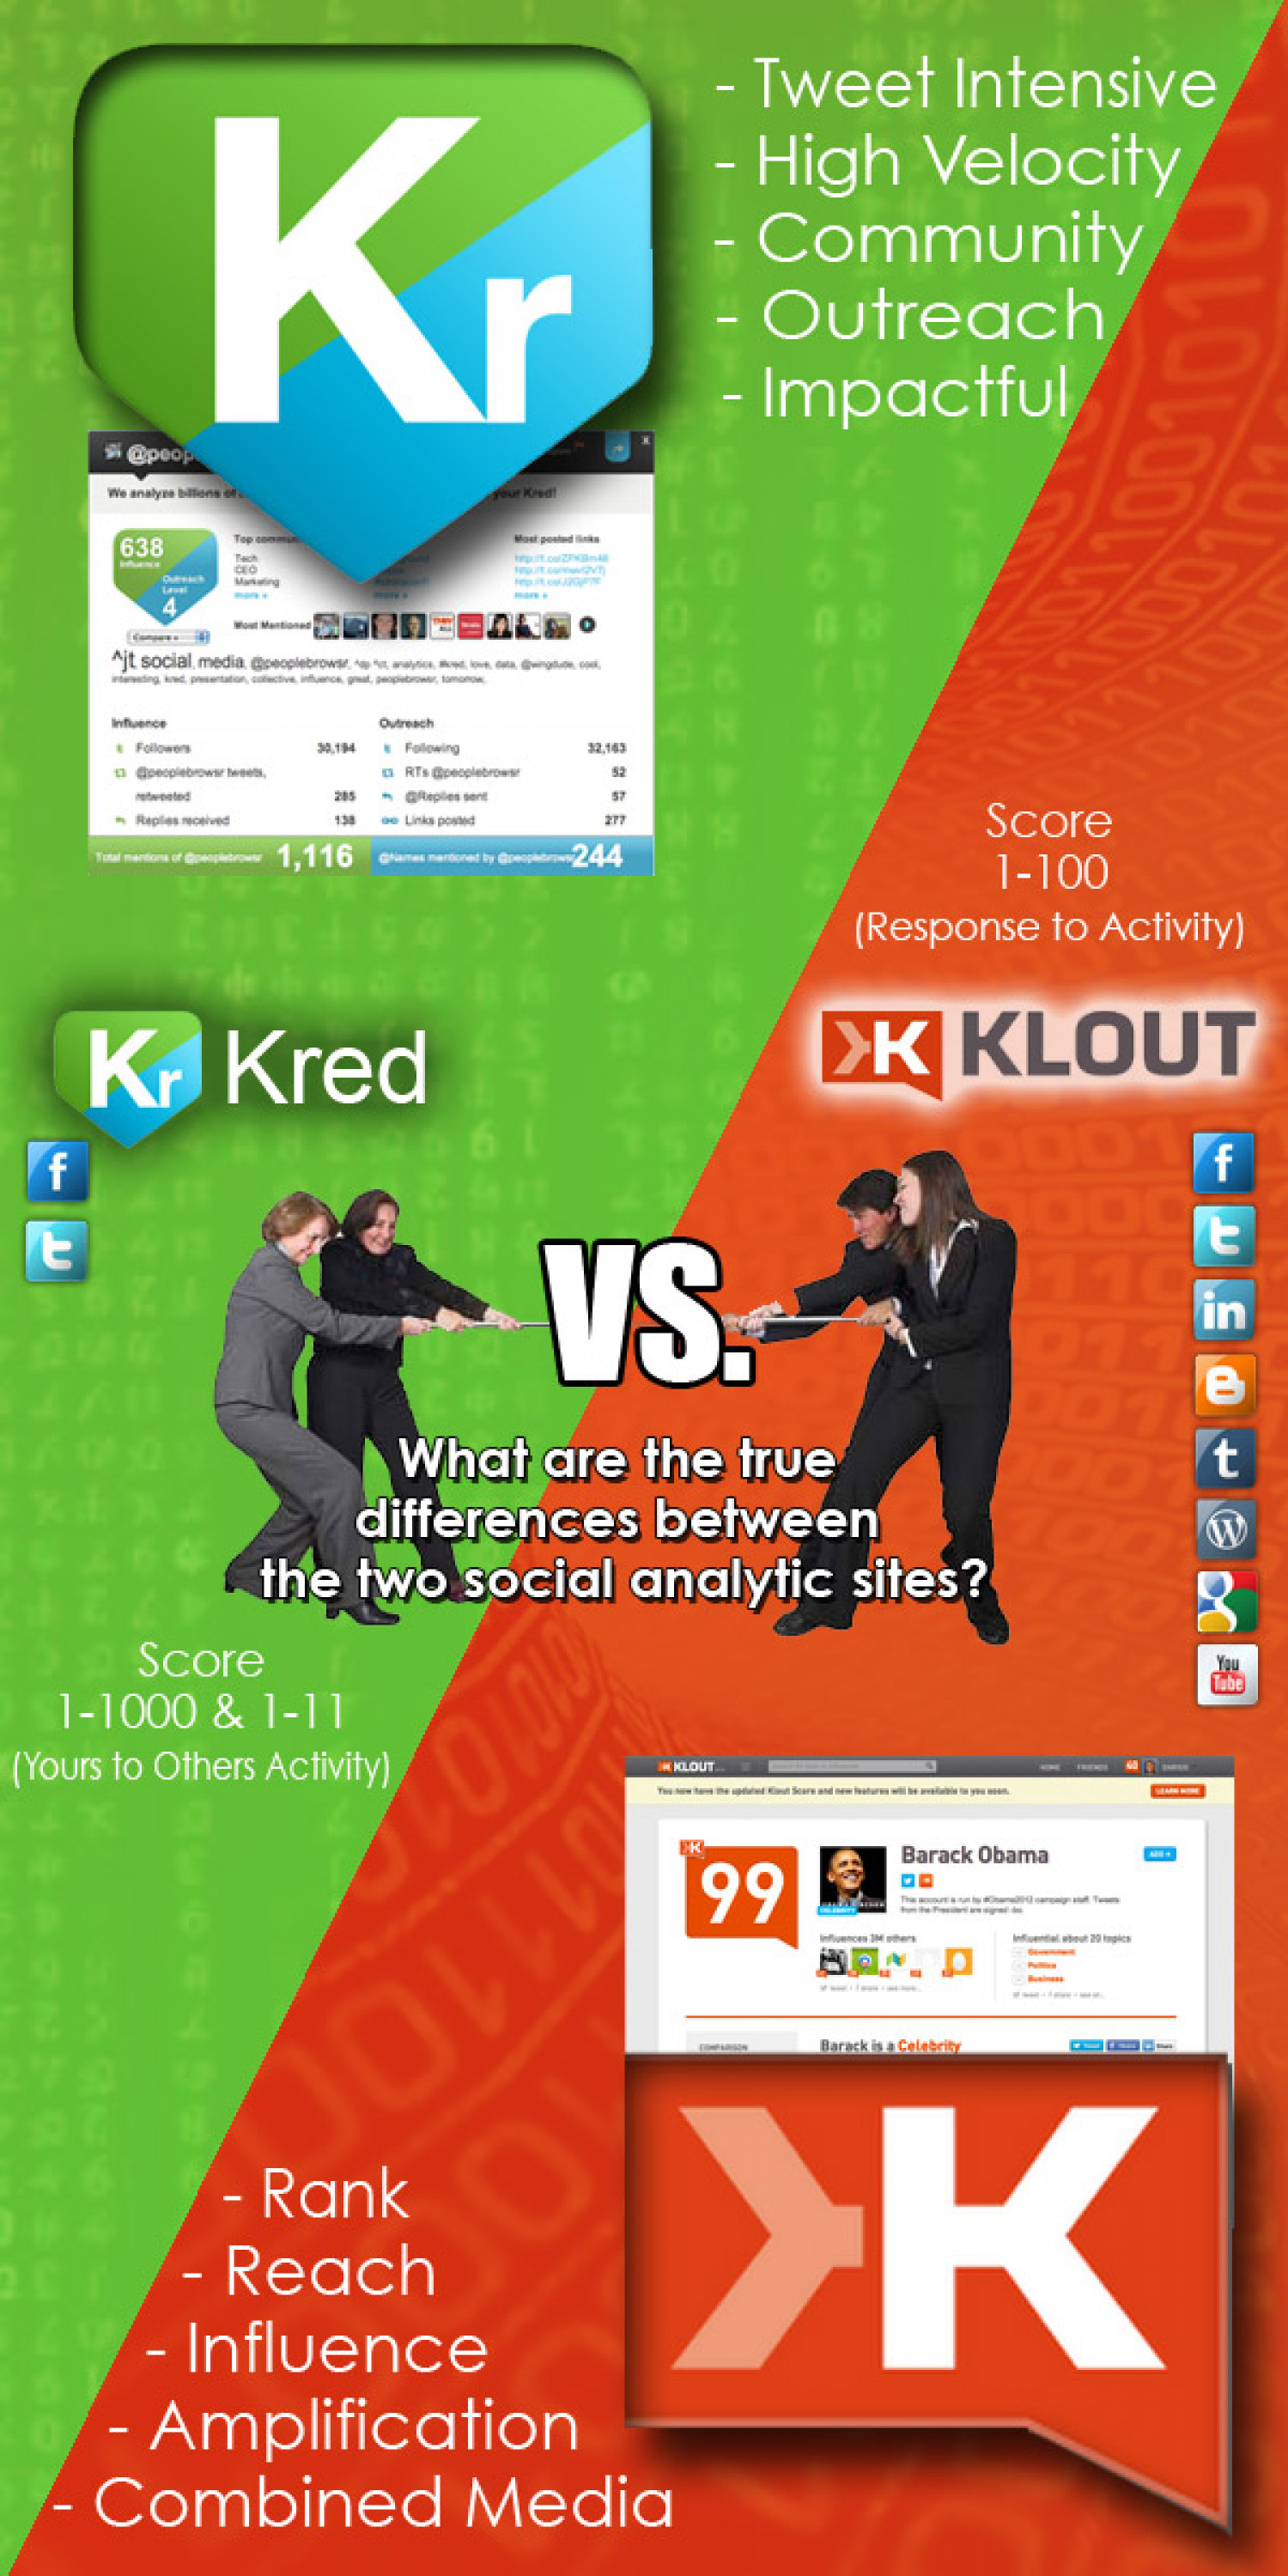 Klout Vs. Kred - The Battle For Your Influence Infographic